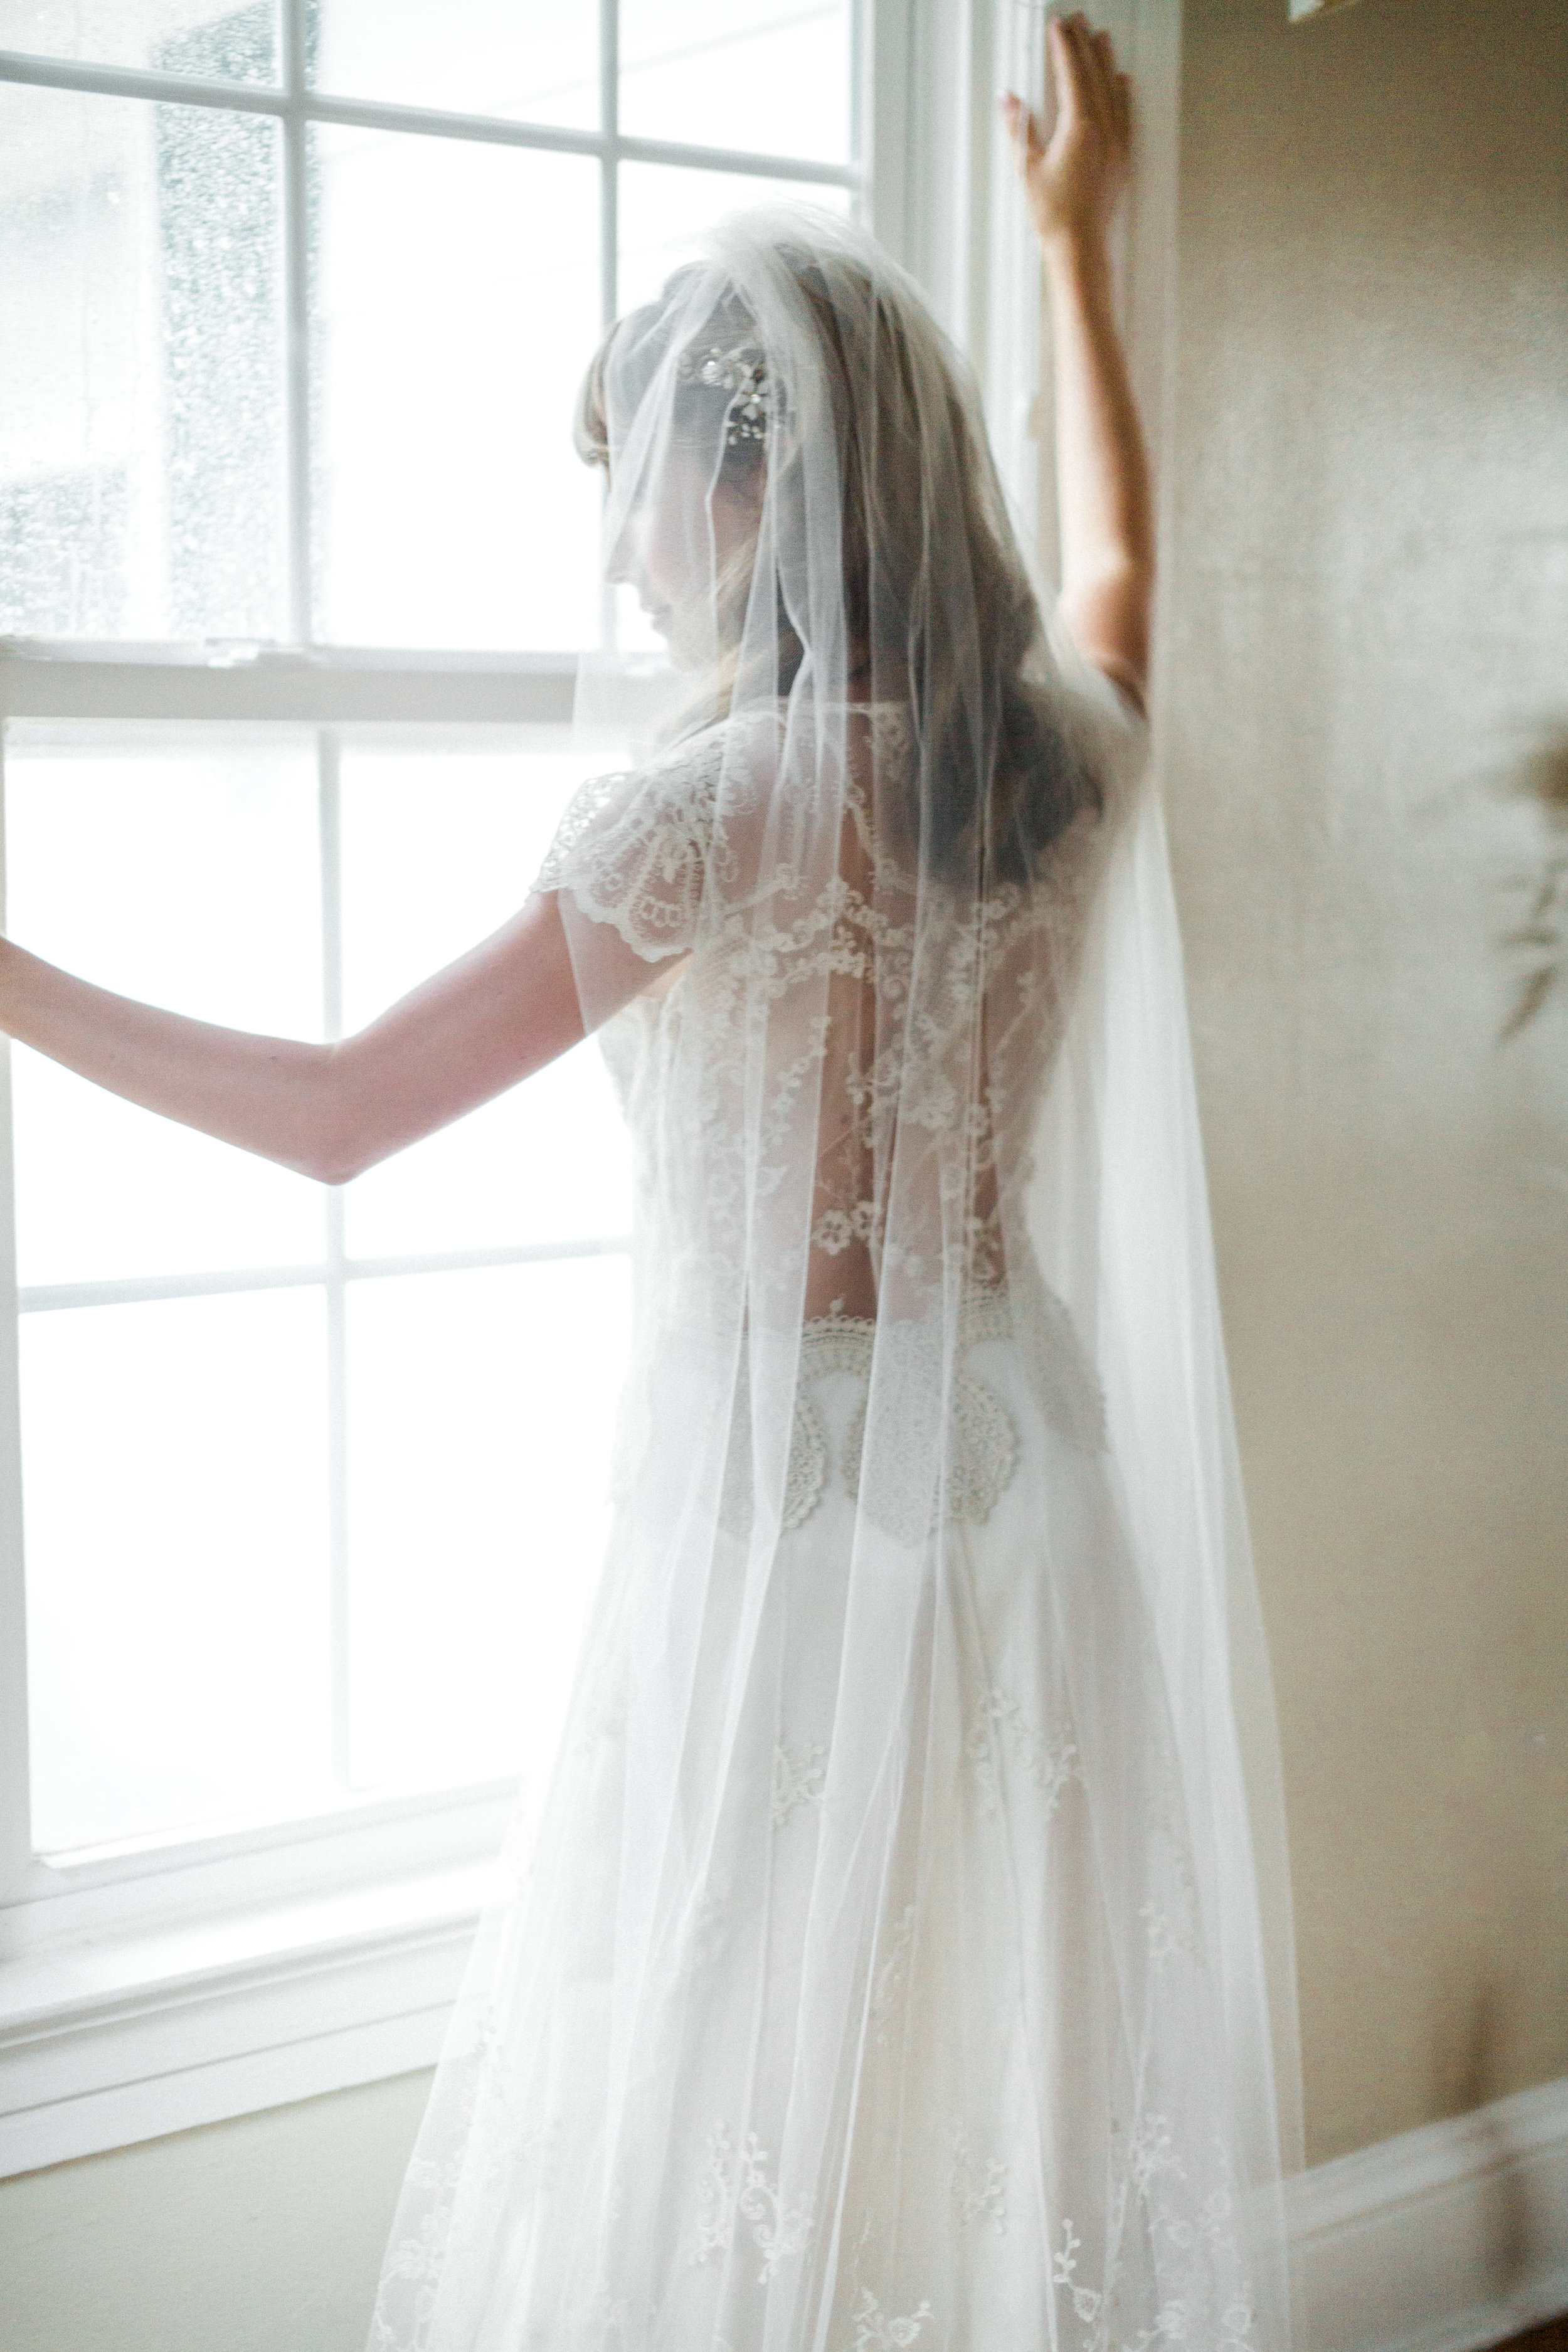 the cypress grove estate house in orlando florida, styled wedding bridal photo in wedding dress with veil